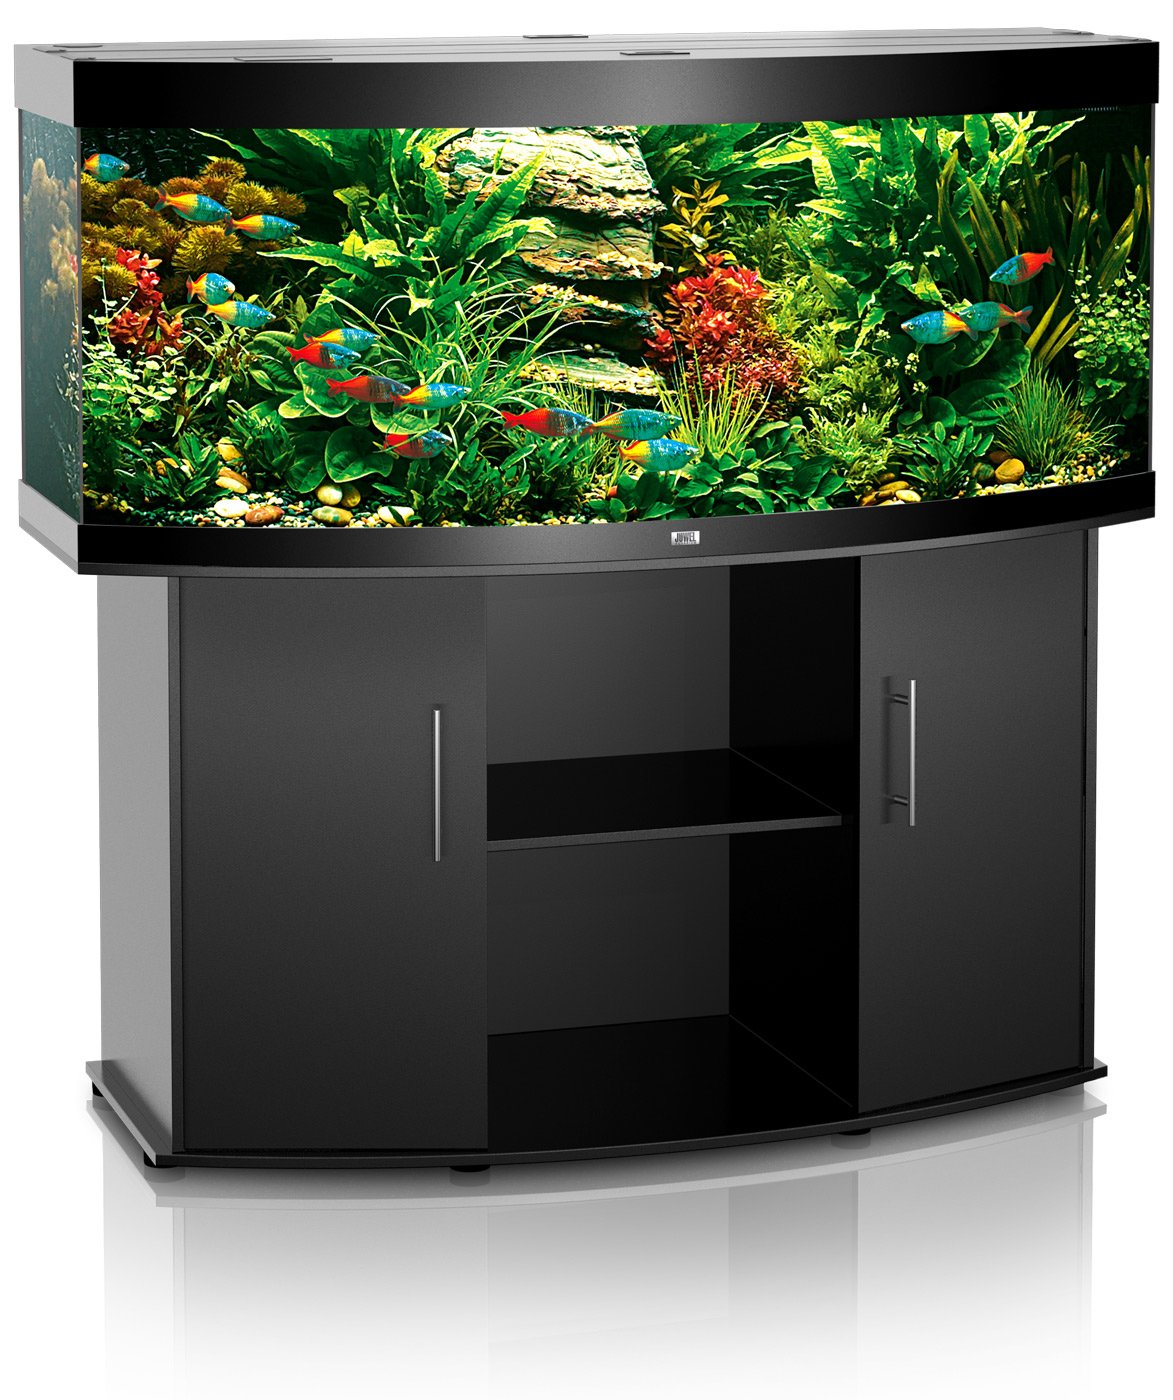 aquarium juwel vision 450 dim 151 x 61 x 64 cm 450 litres. Black Bedroom Furniture Sets. Home Design Ideas